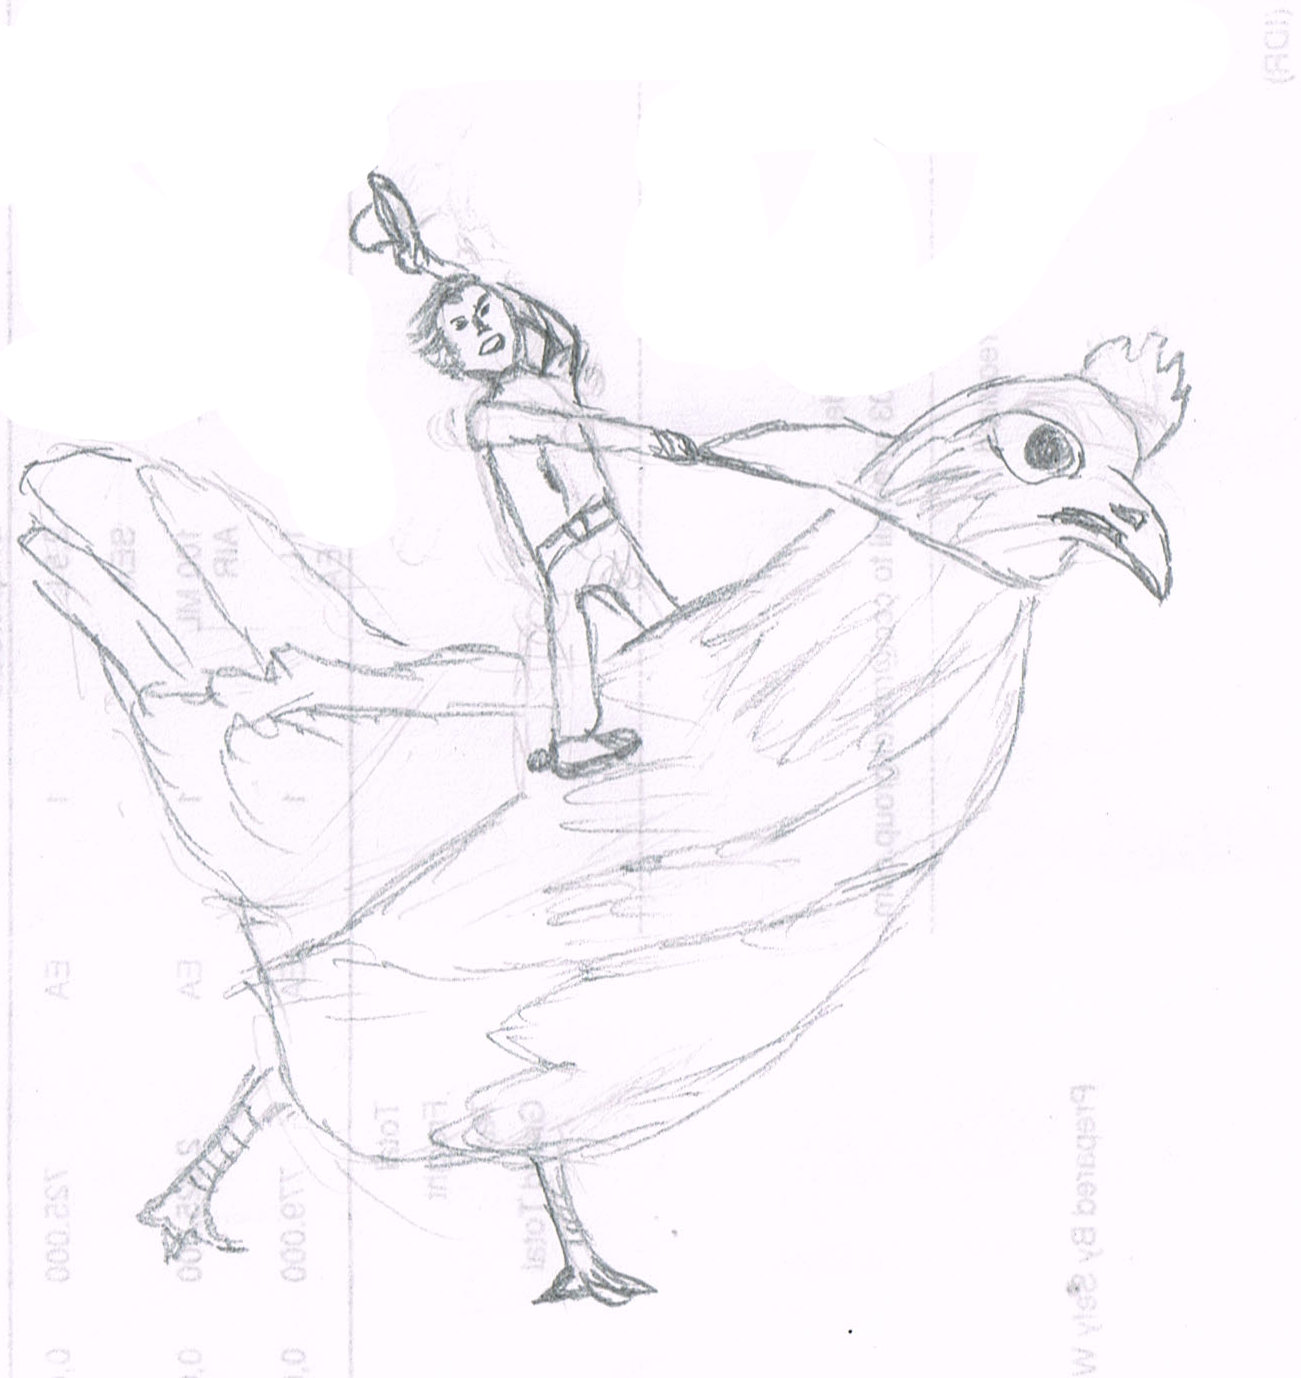 Drawn rooster rodeo : The Rodeo November Chicken